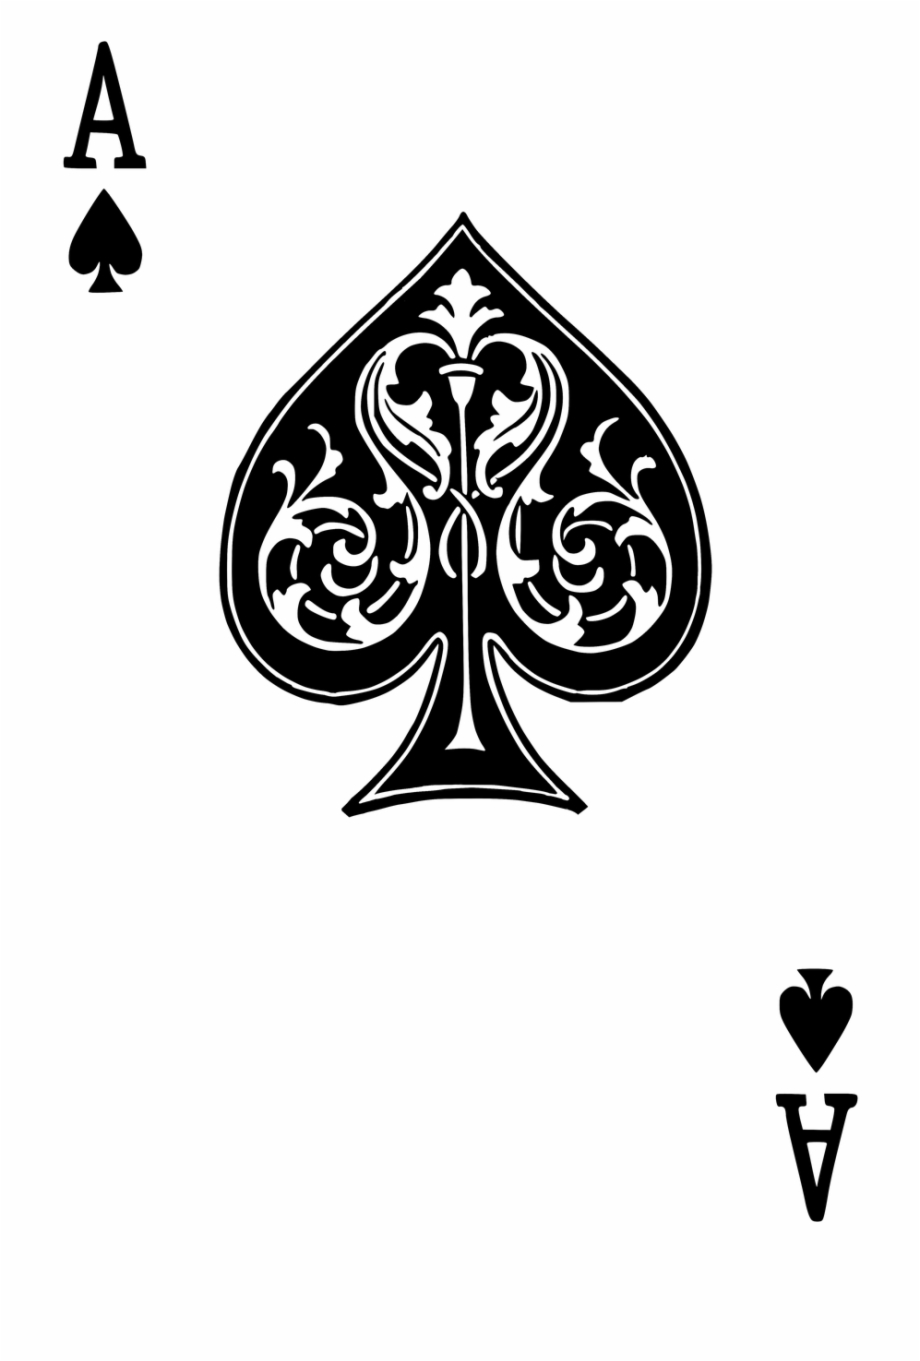 Ace Of Spades Png Hd - Ace Of Spades Png Free PNG Images & Clipart Download #2213111 ...